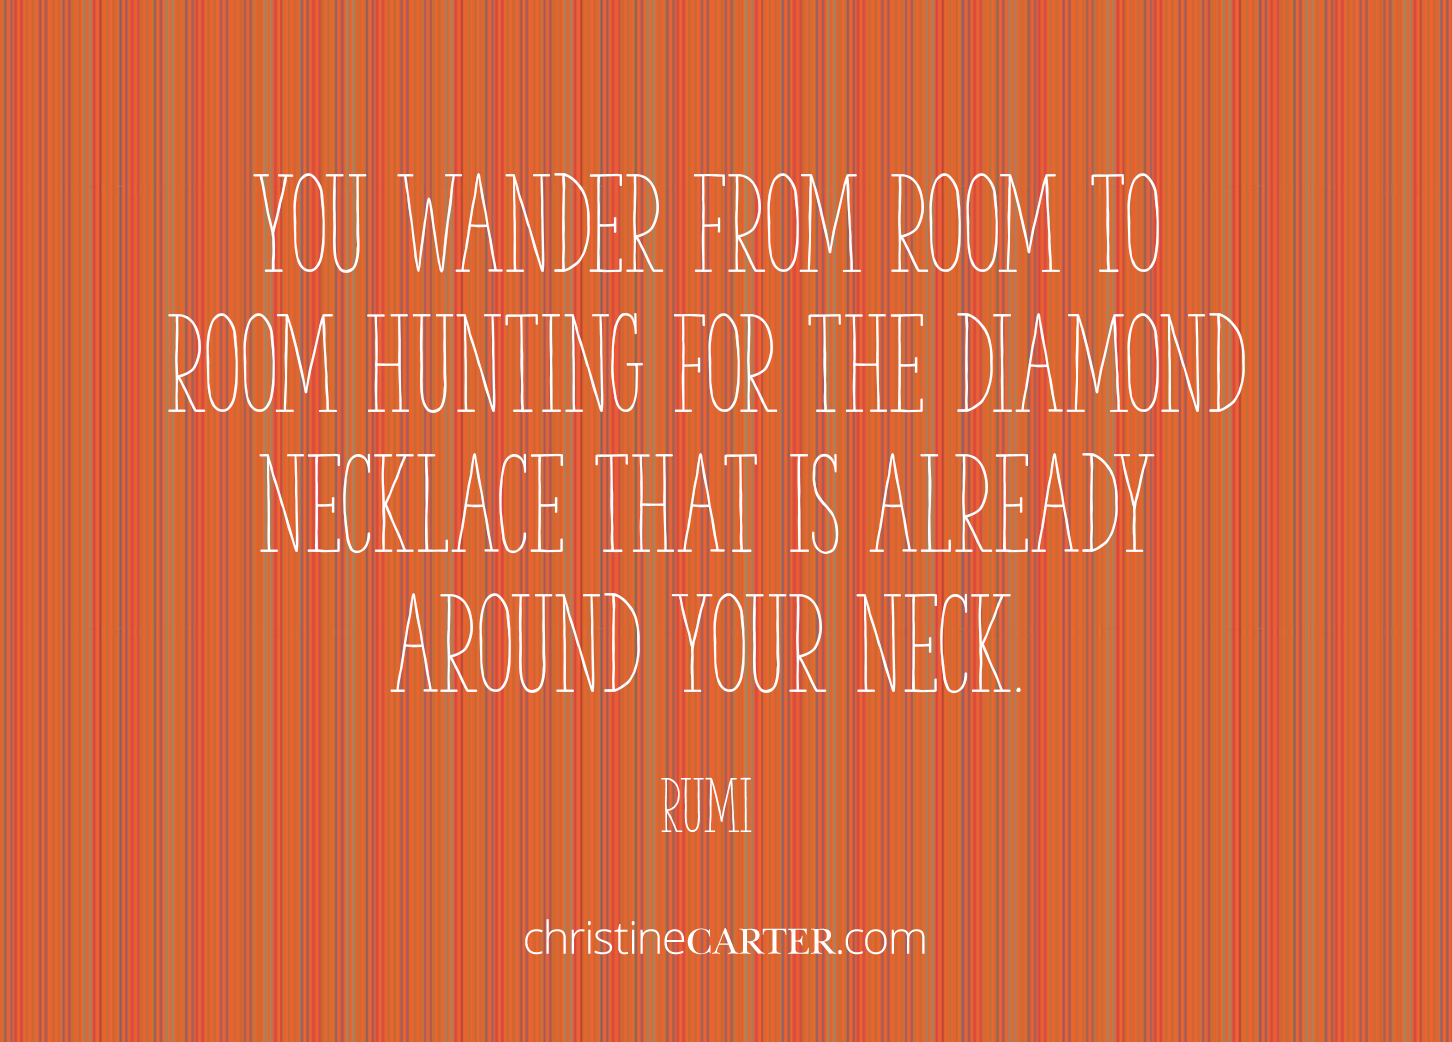 """""""You wander from room to room hunting for the diamond necklace that is already around your neck"""". --Ru"""